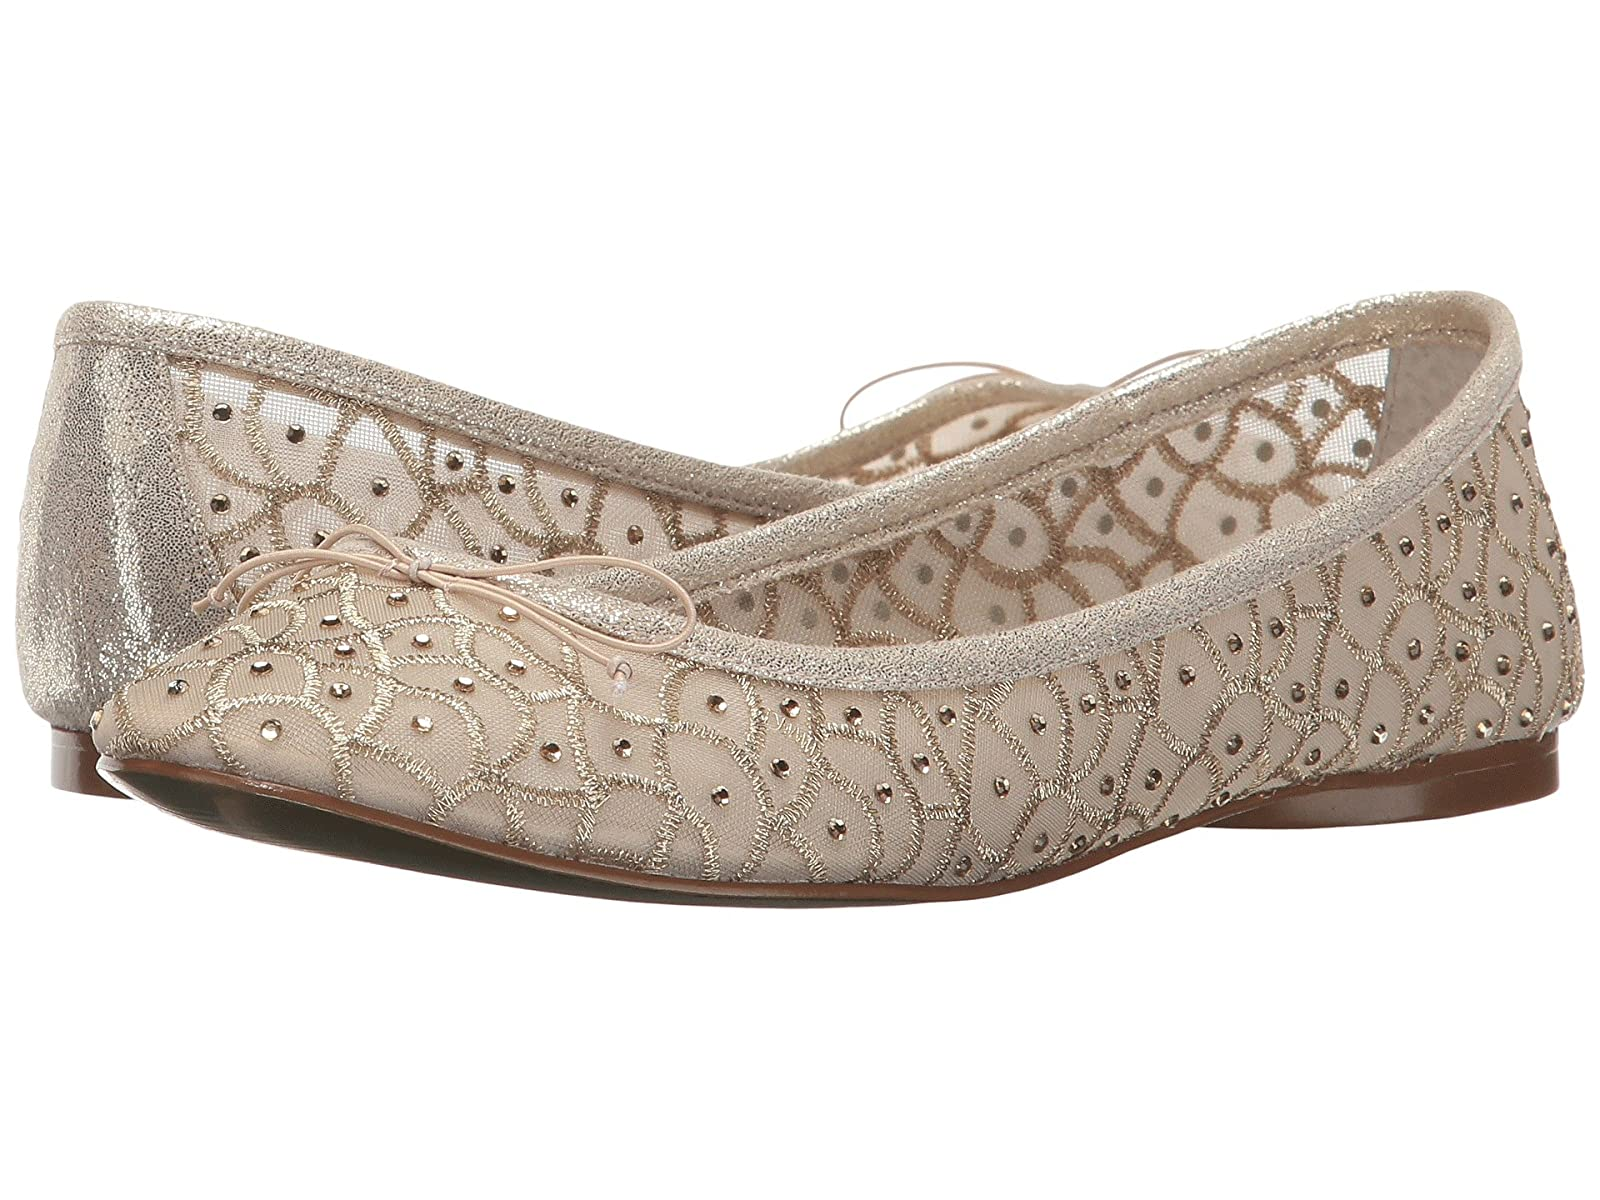 Adrianna Papell NataliaAtmospheric grades have affordable shoes